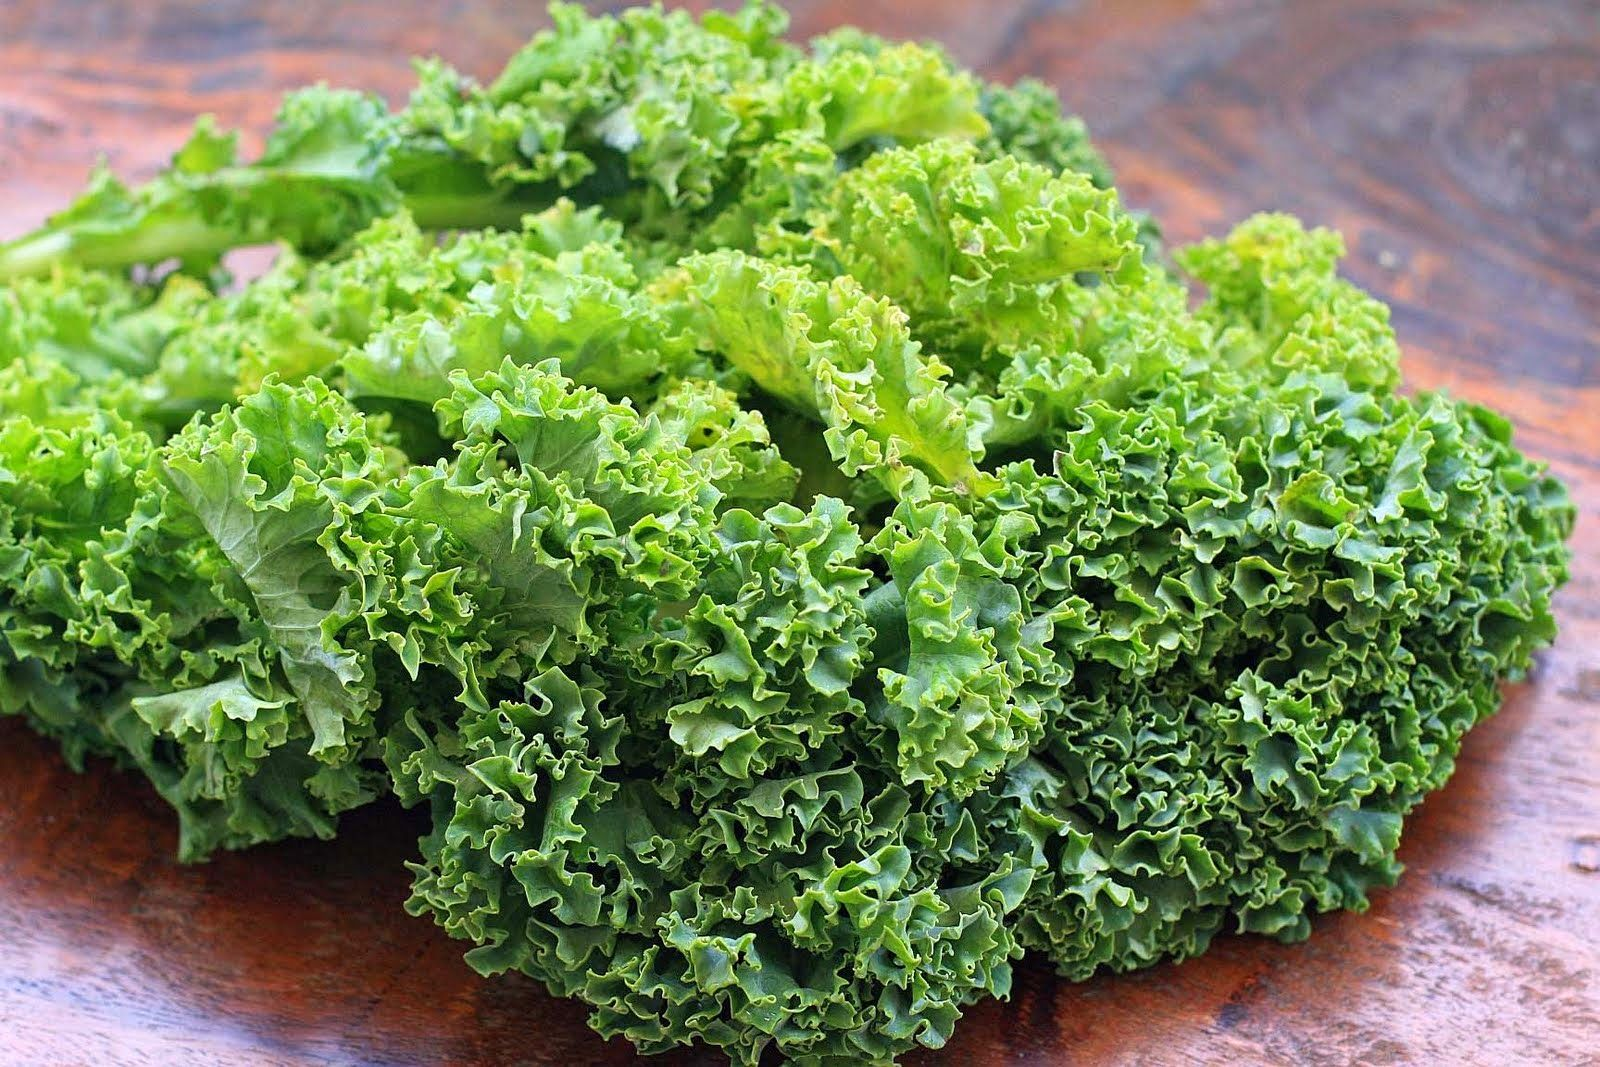 Kale is a leafy green cruciferous vegetable that is chock-full of essential vitamins A, C and K as well as minerals like copper, potassium, iron, manganese and phosphorus.